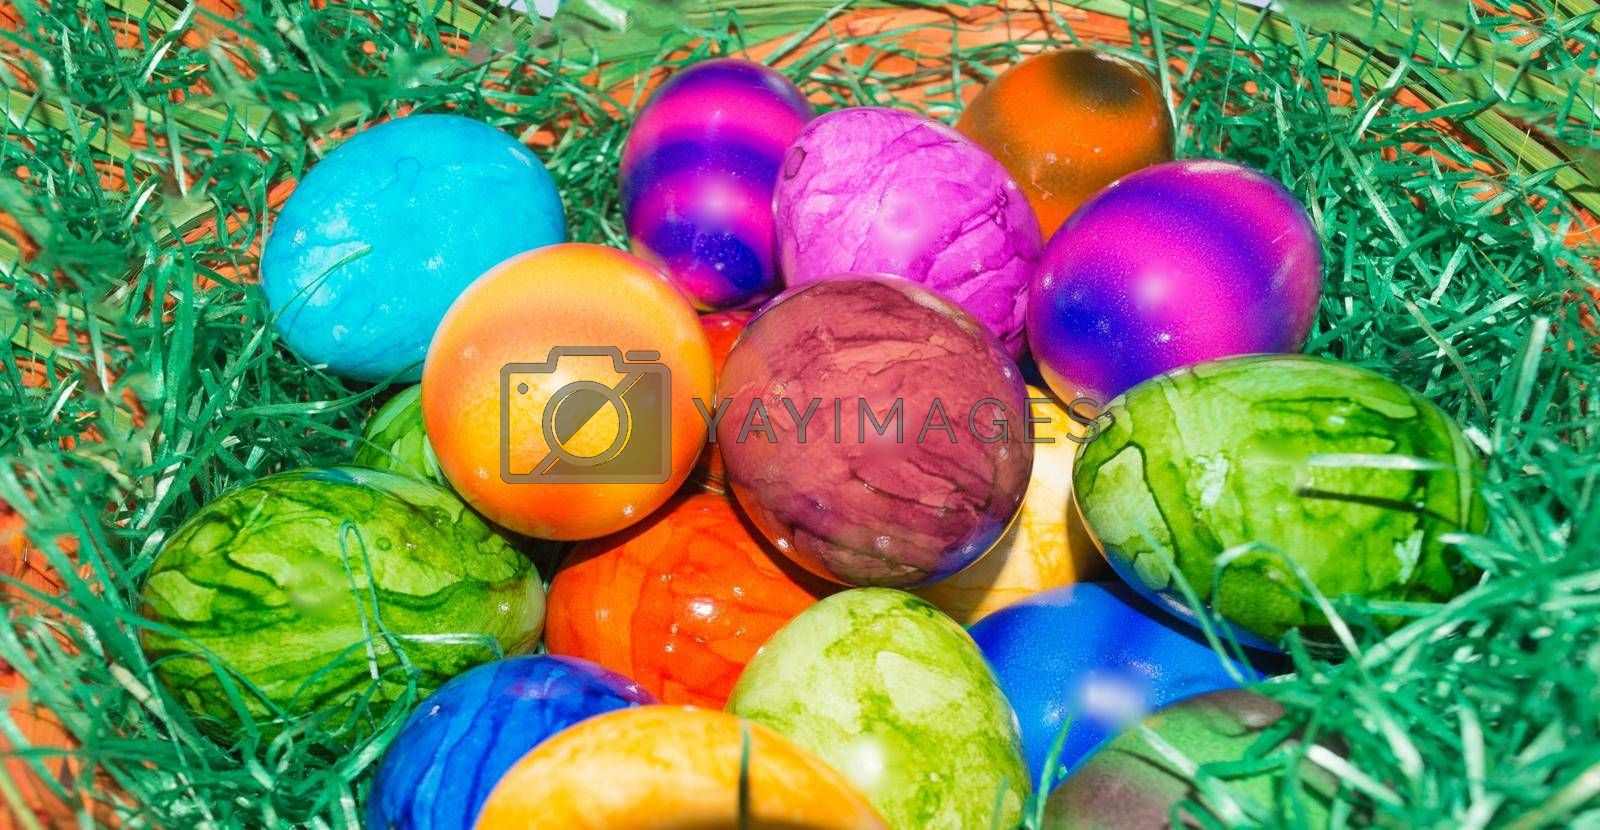 Royalty free image of Colorful Easter basket or basket      by JFsPic